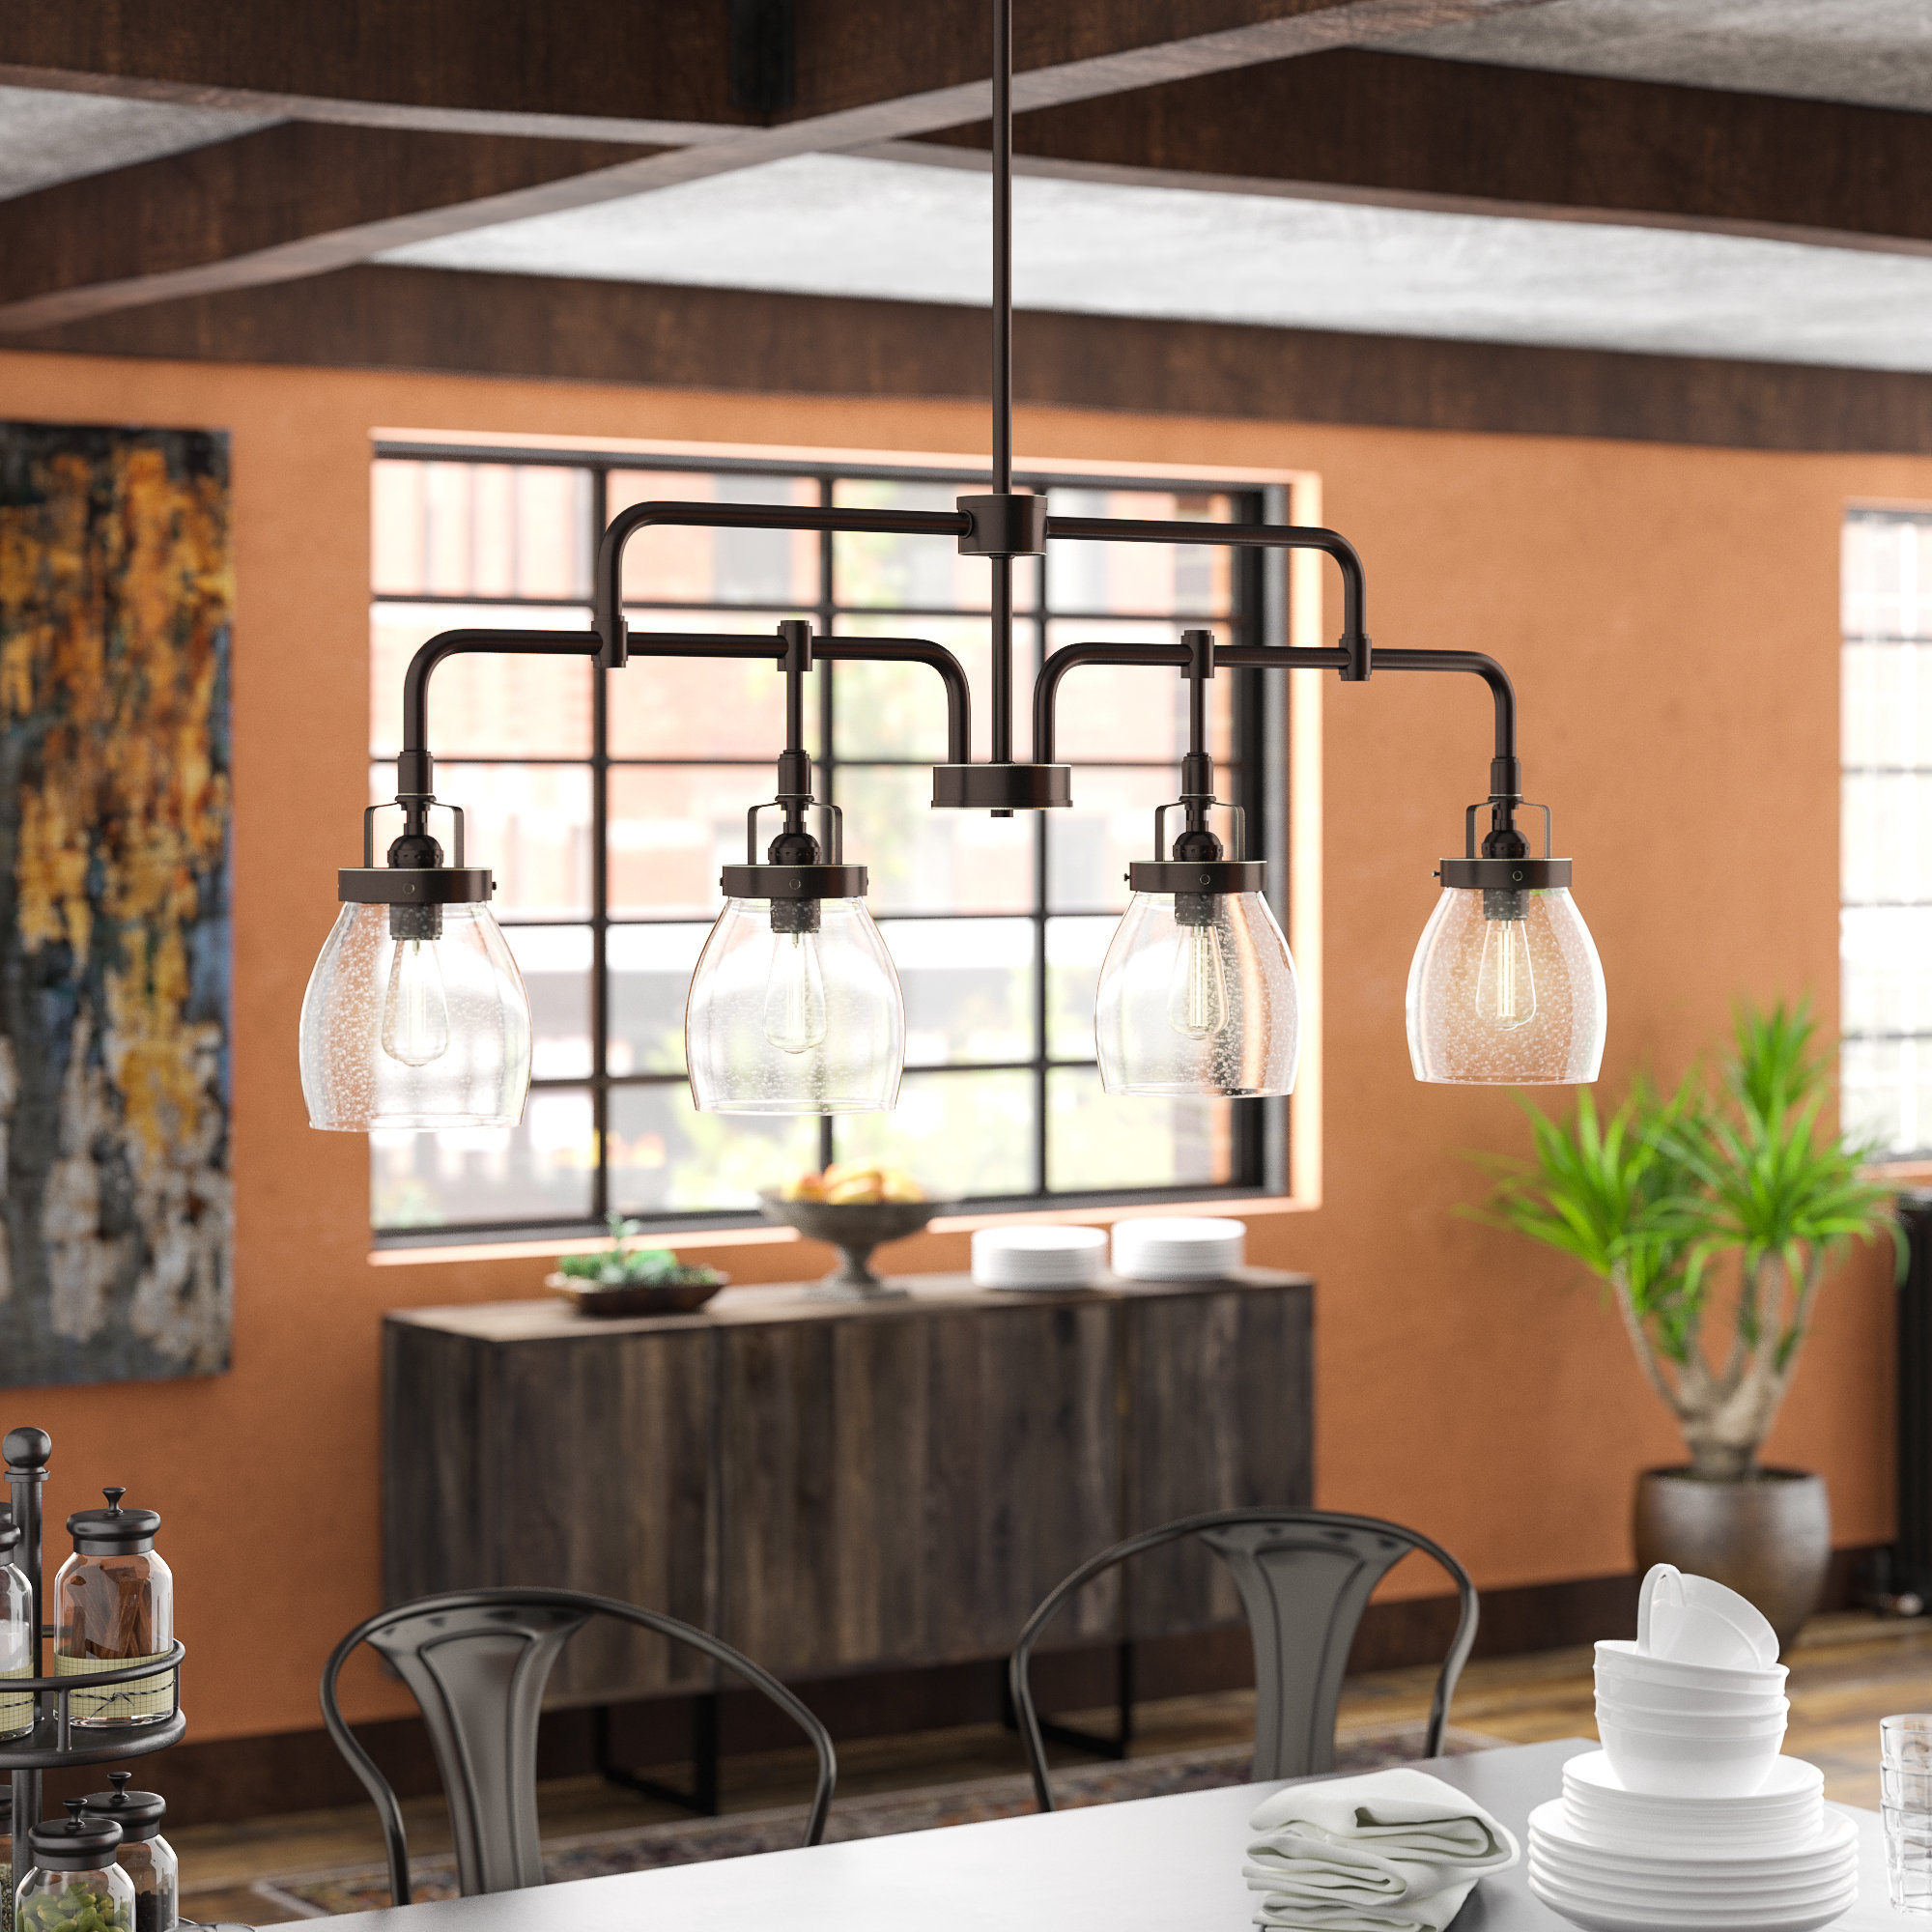 Cinchring 4 Light Kitchen Island Linear Pendants With Regard To Most Current Houon 4 Light Kitchen Island Pendant (Gallery 7 of 20)